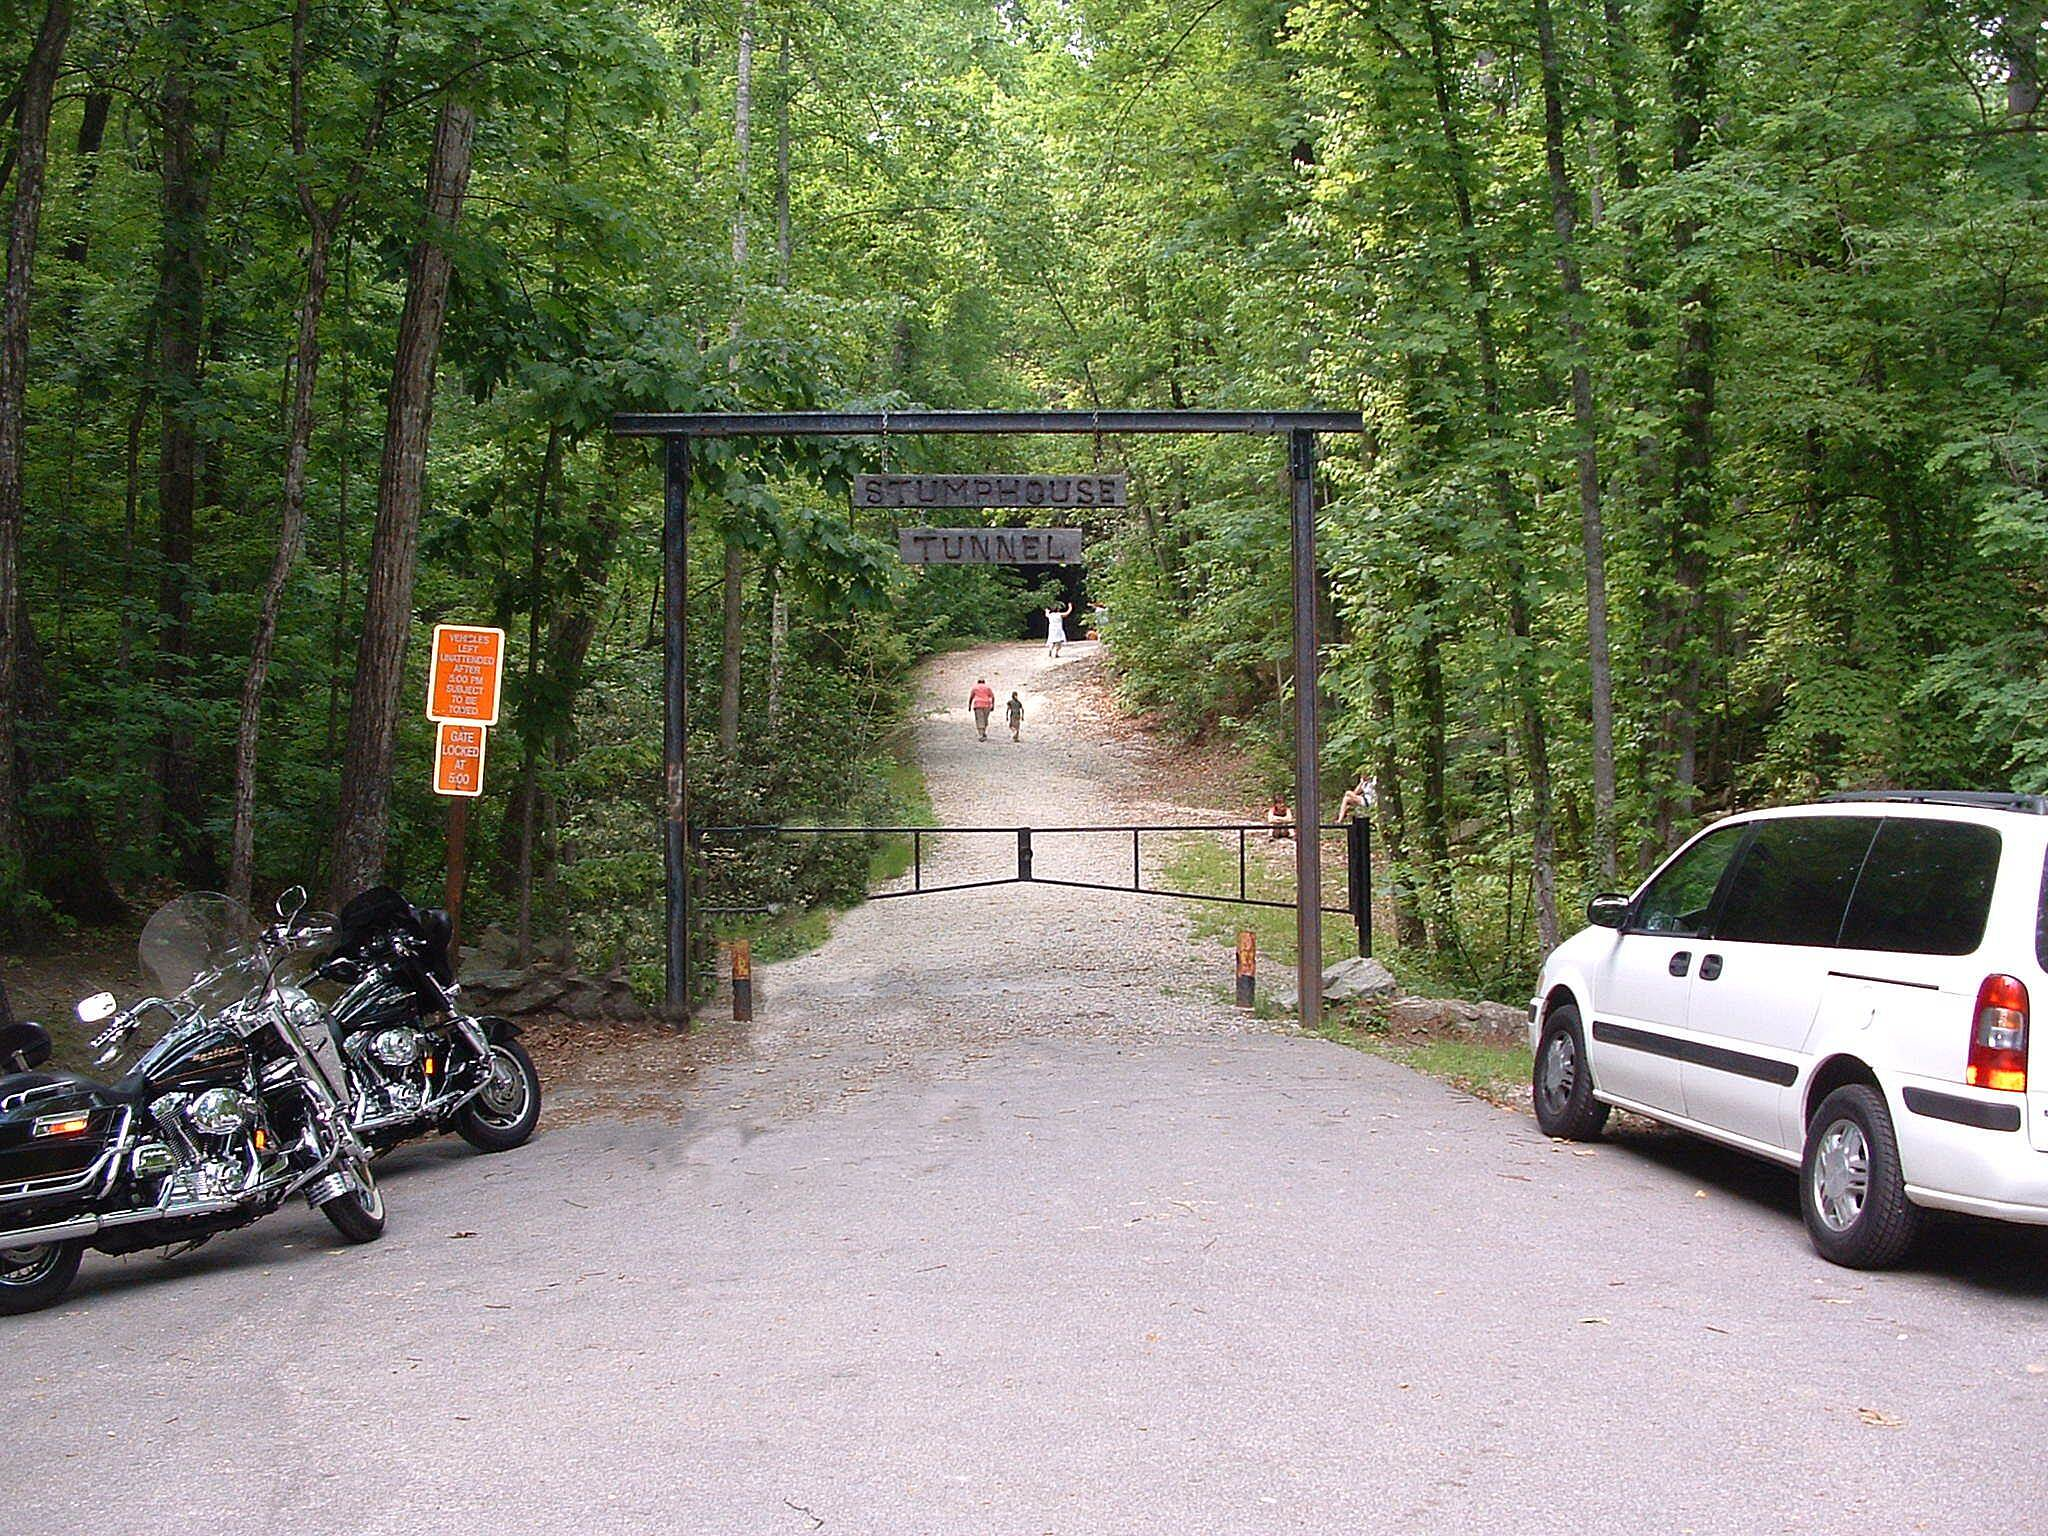 Blue Ridge Railroad Historical Trail STUMPHOUSE TUNNEL  Entrance to the tunnel